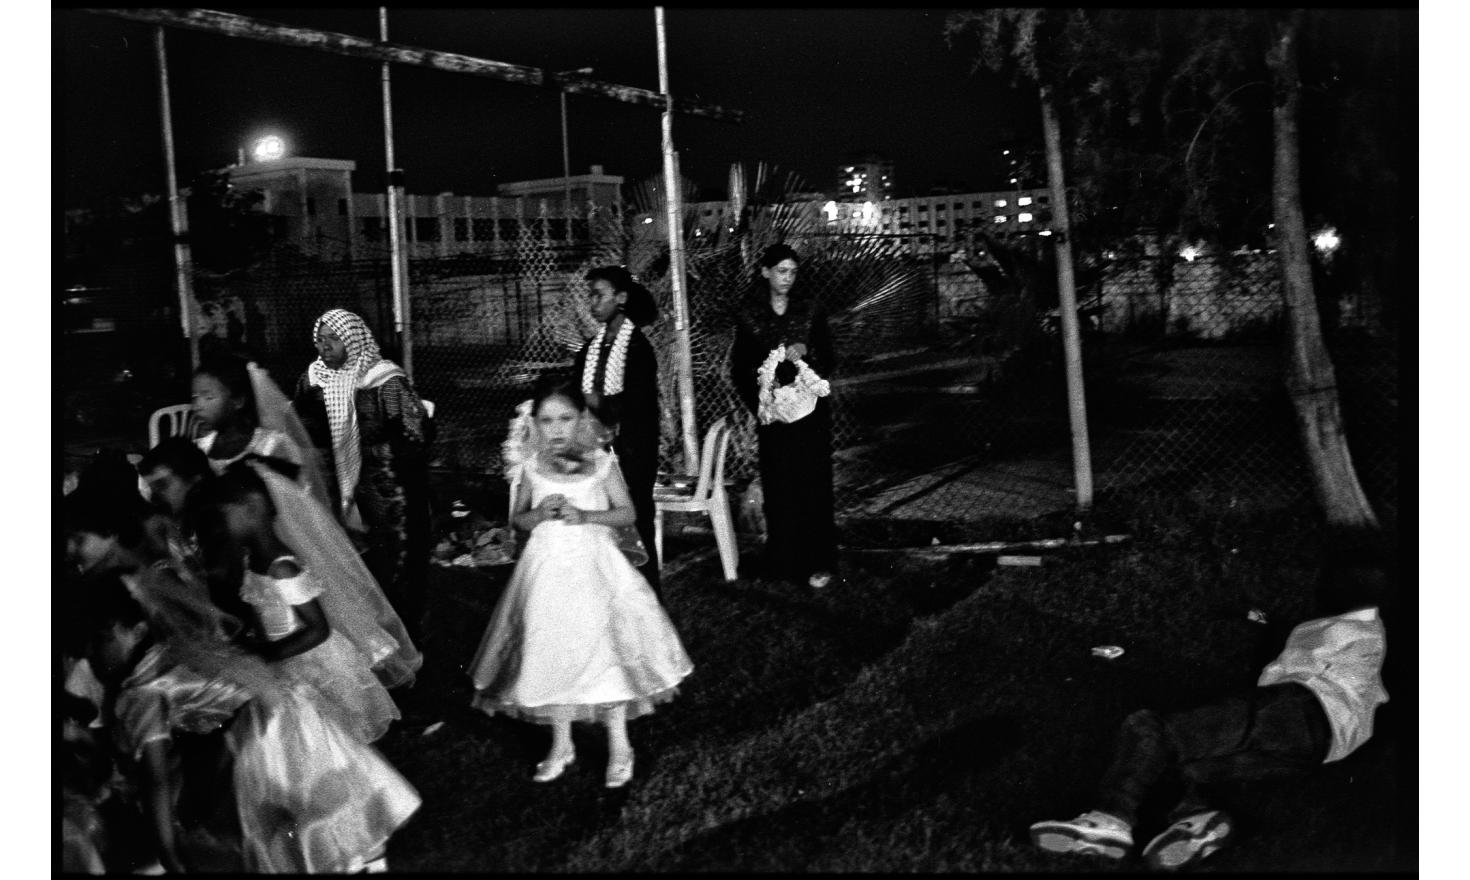 A group wedding has been organized by Hamas in a Gaza stadium. Husbands are introduced to the audience. The wifes, not present in the stadium, are represented by ten virgin girls, around 10 years old. Gaza, september 2005.